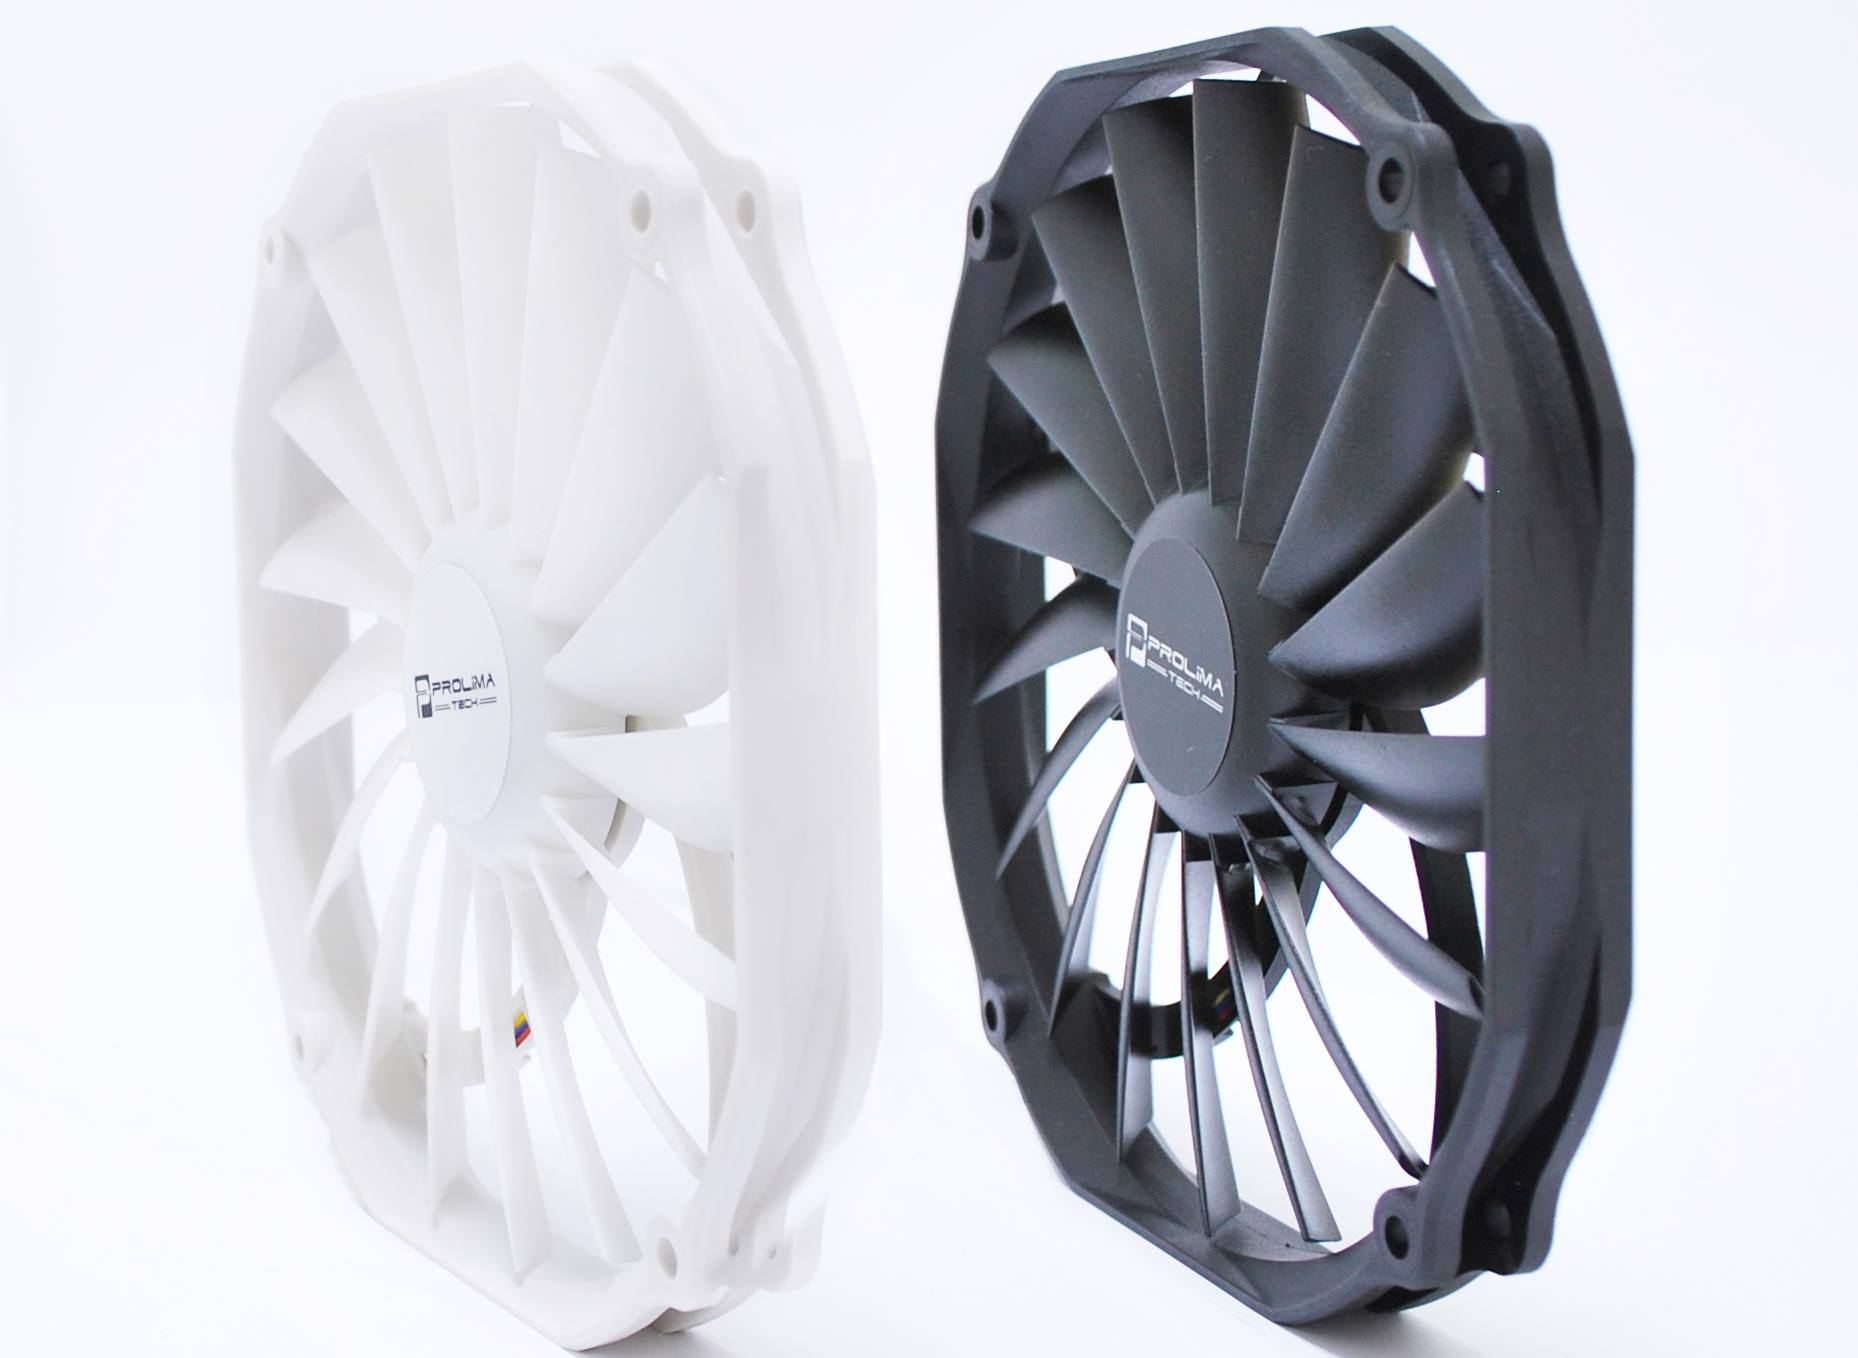 Photo of Prolimatech Ultra Sleek Vortex Fan Give away